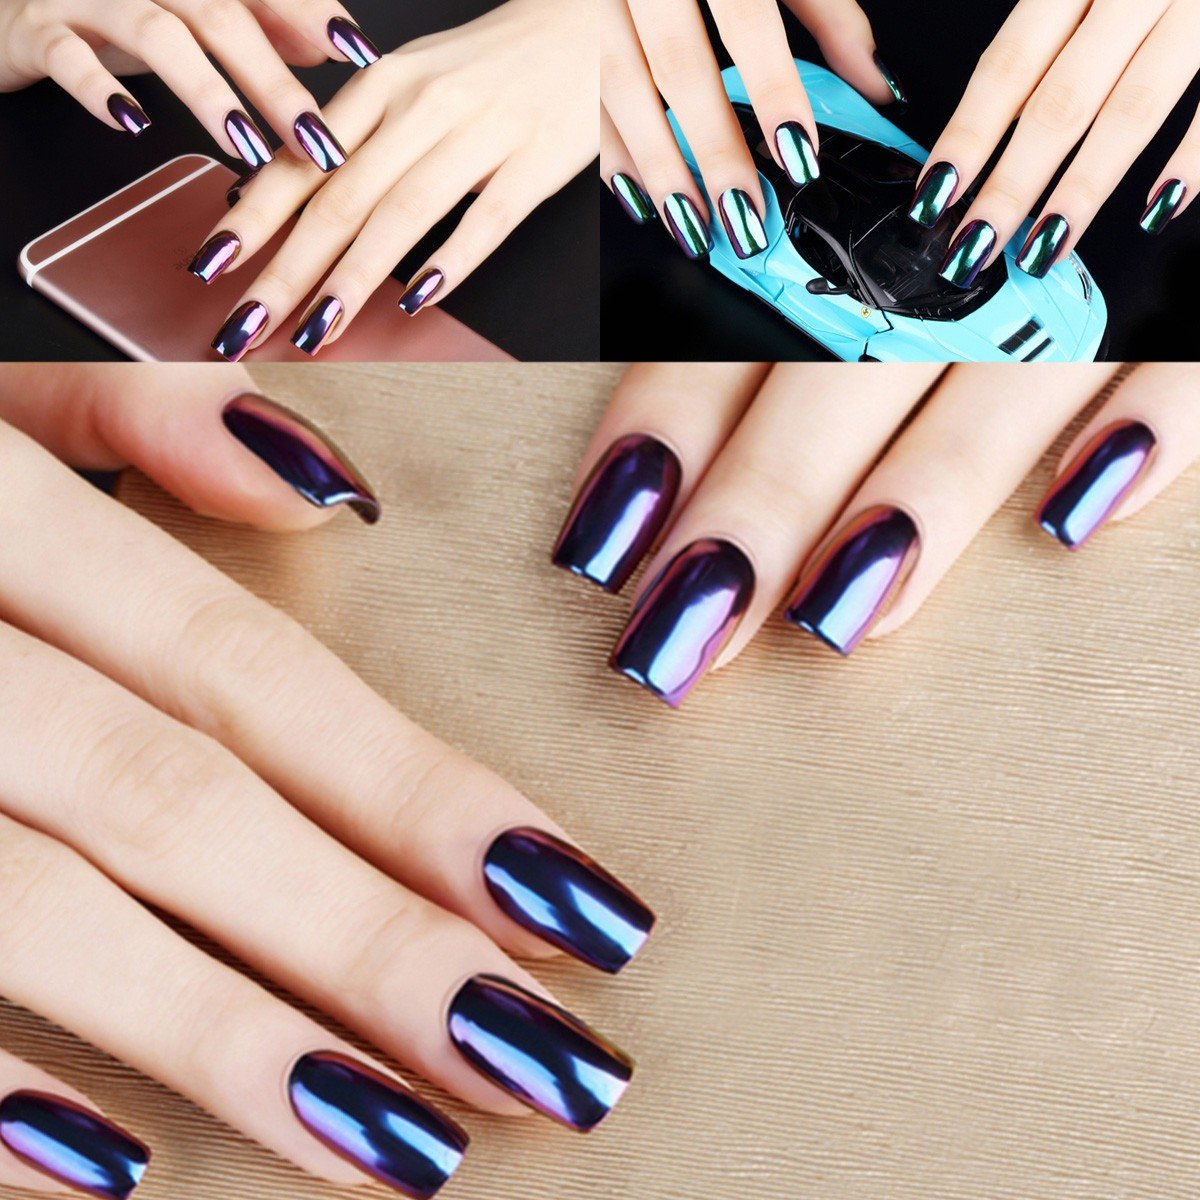 Amazon.com : DANCINGNAIL 12 Colors Magic Mirror Chrome Effect ...